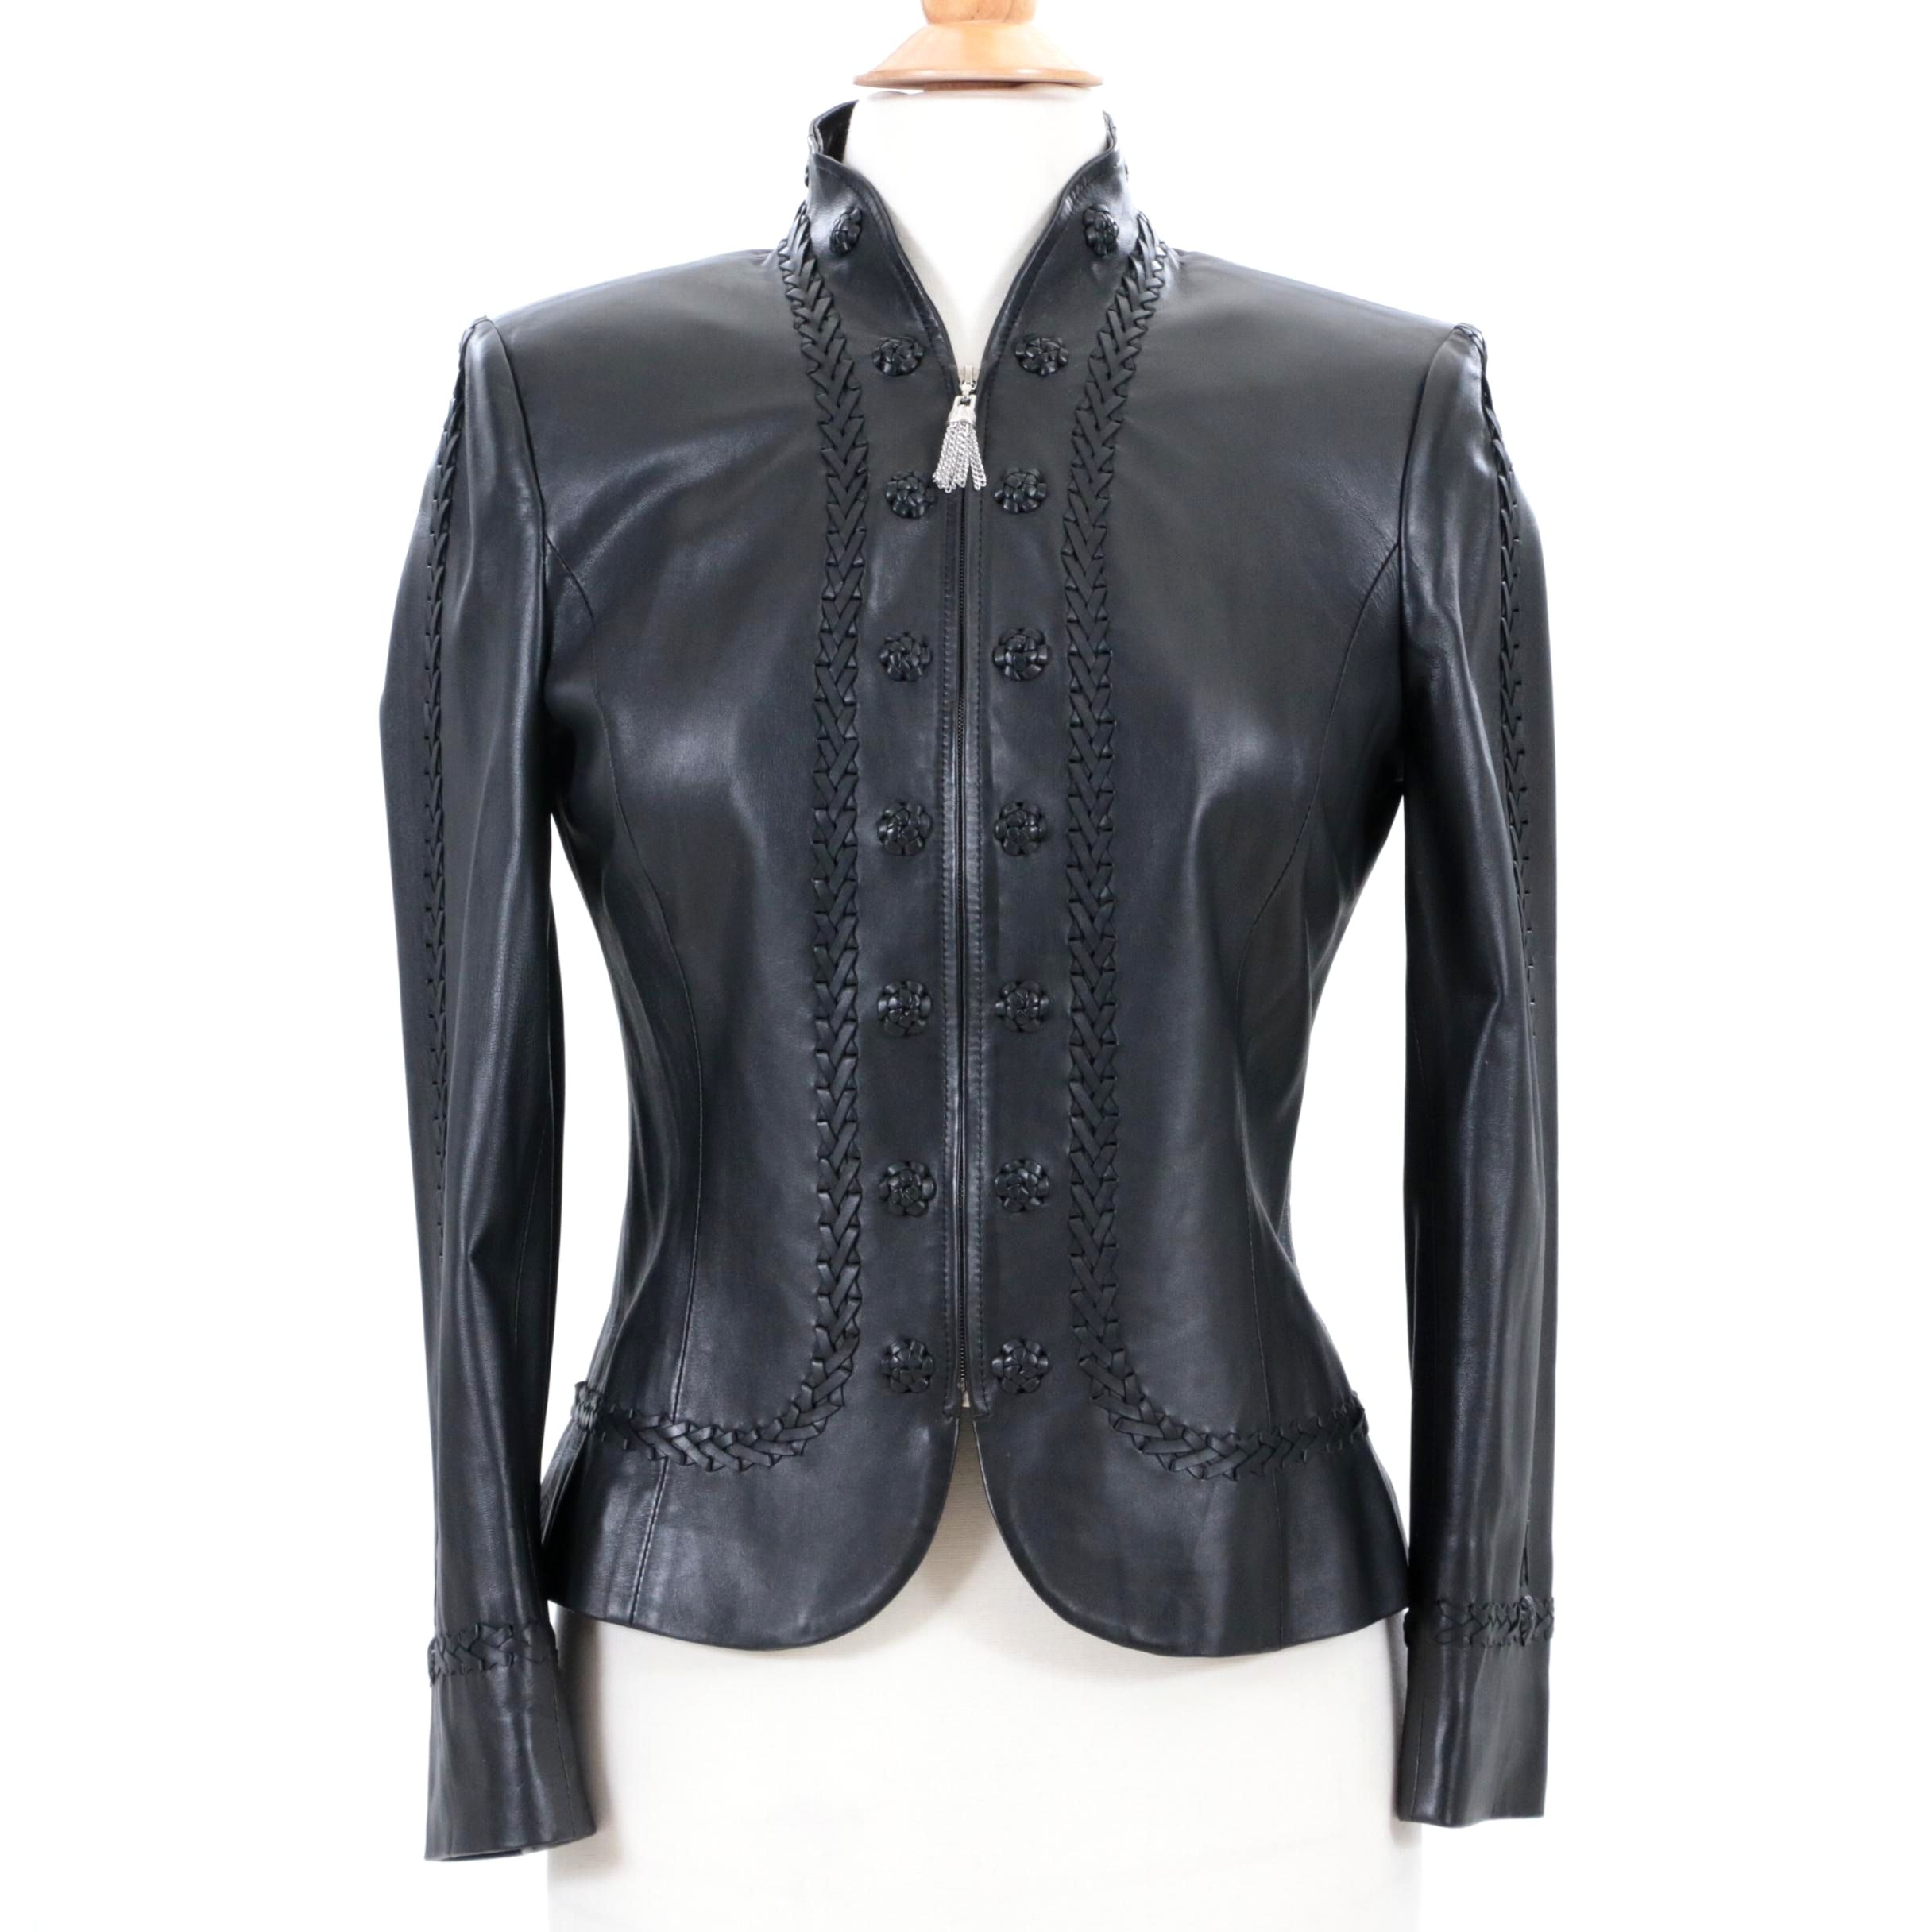 St. John Collection Black Leather Jacket with Woven Leather Accents and Tassel